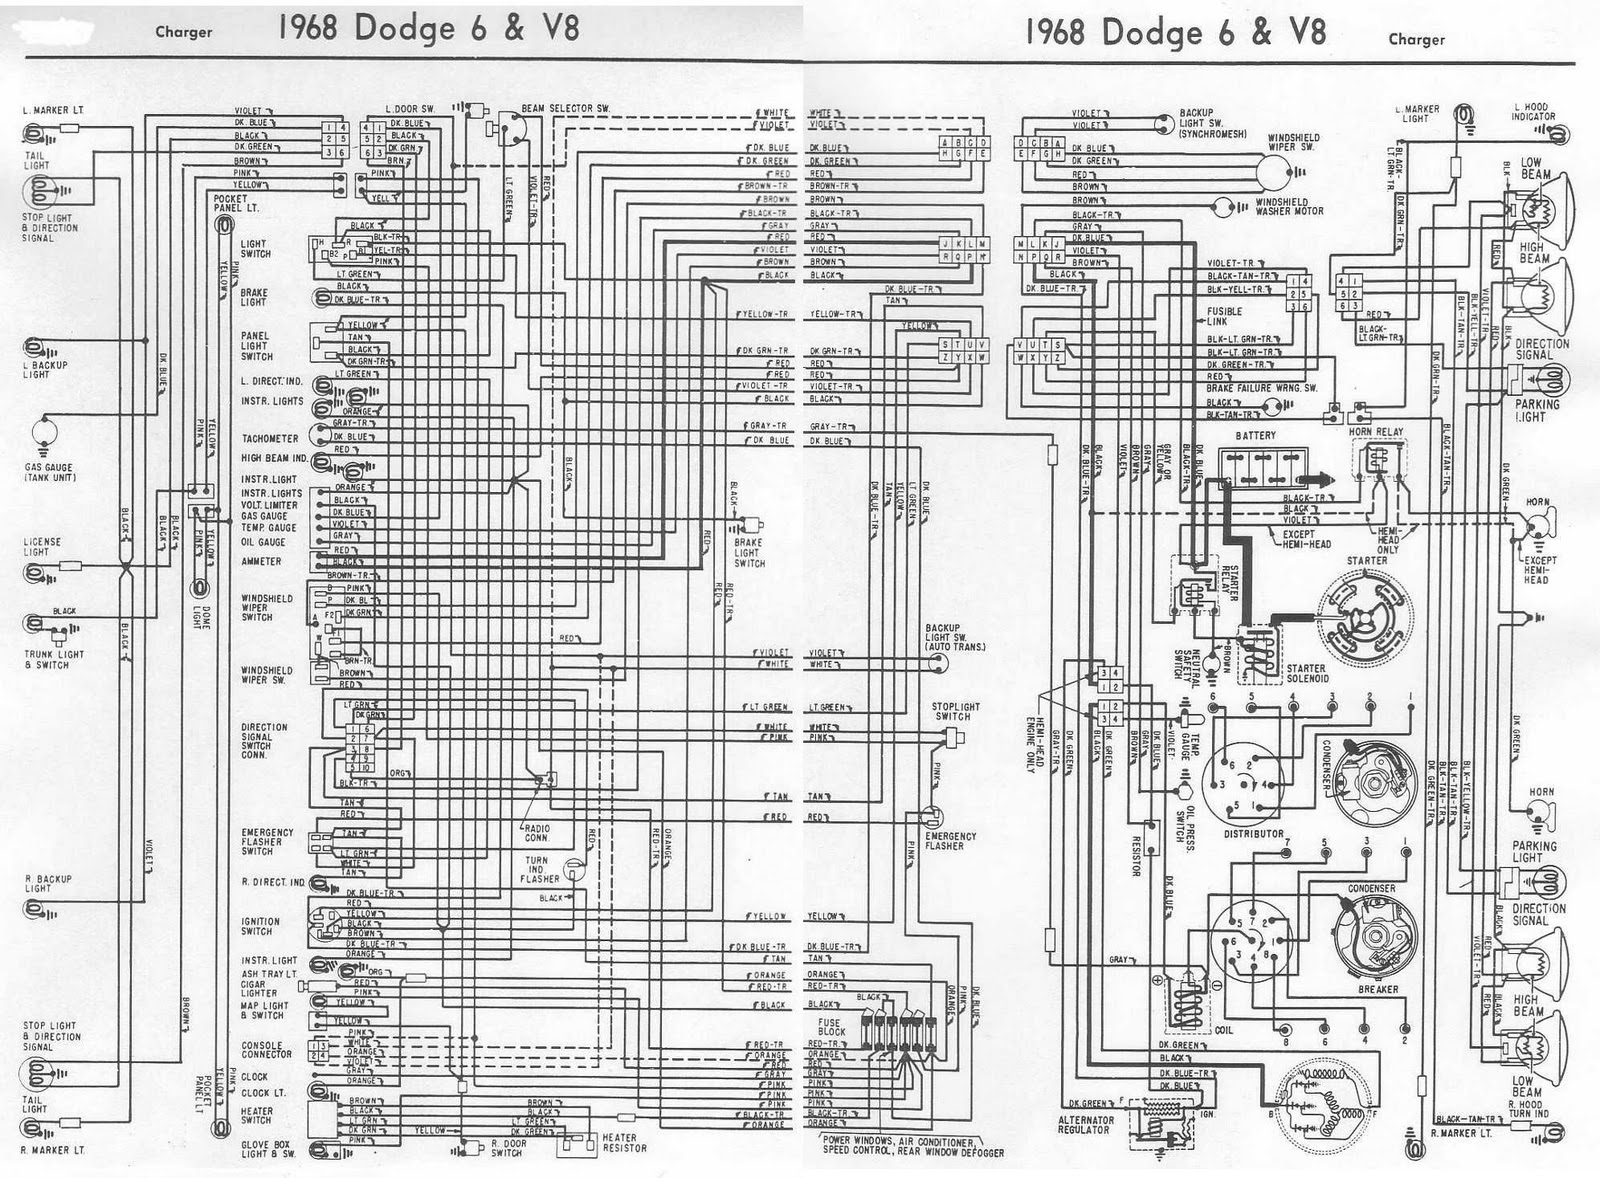 1973 Dodge Charger Ignition Wiring Diagram Labelled Of Root Hair Cell 1968 6 And V8 Complete Electrical